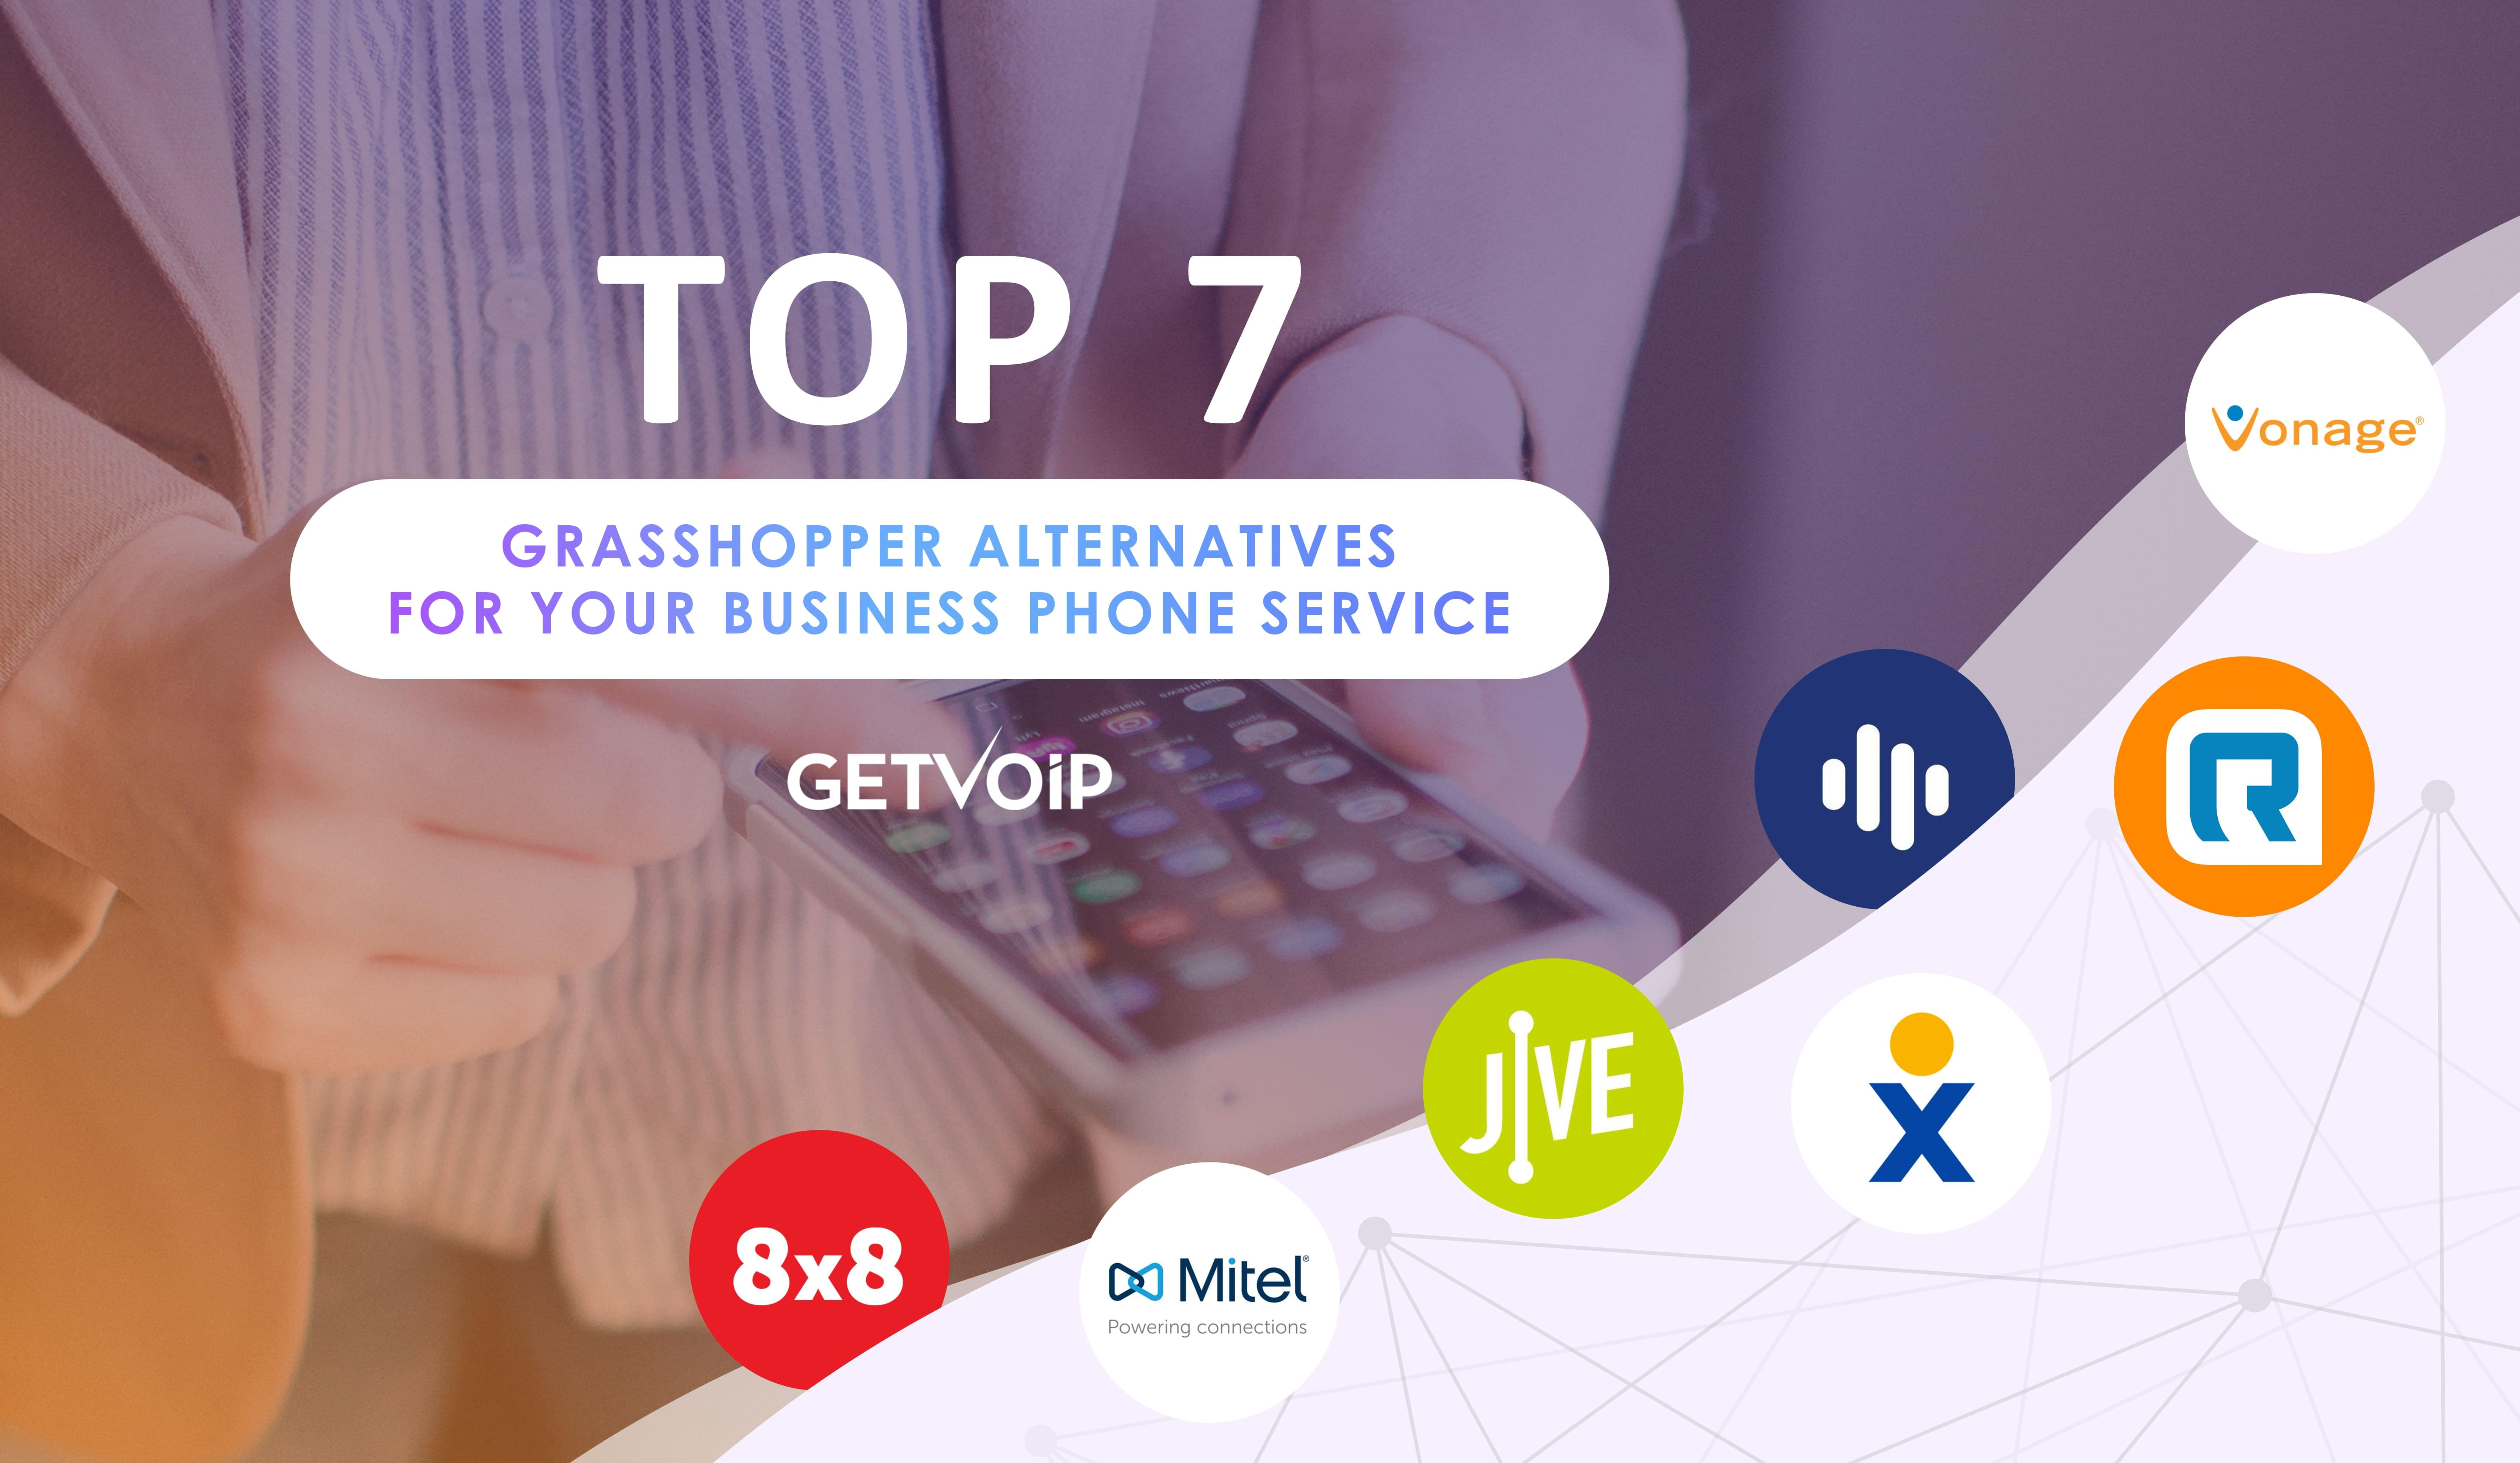 Top 7 Grasshopper Alternatives For Your Business Phone Service